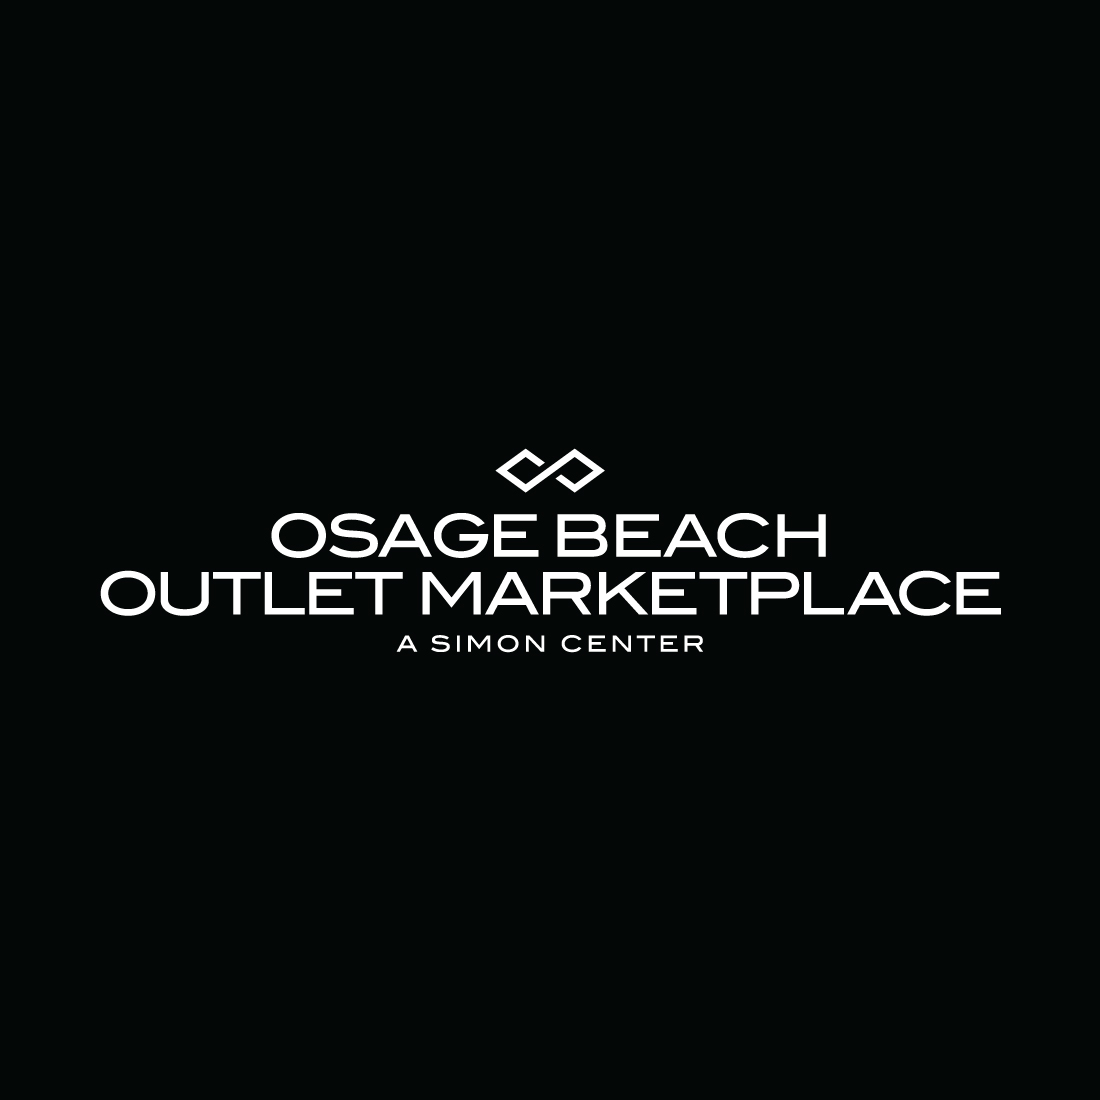 Osage Beach Outlet Marketplace